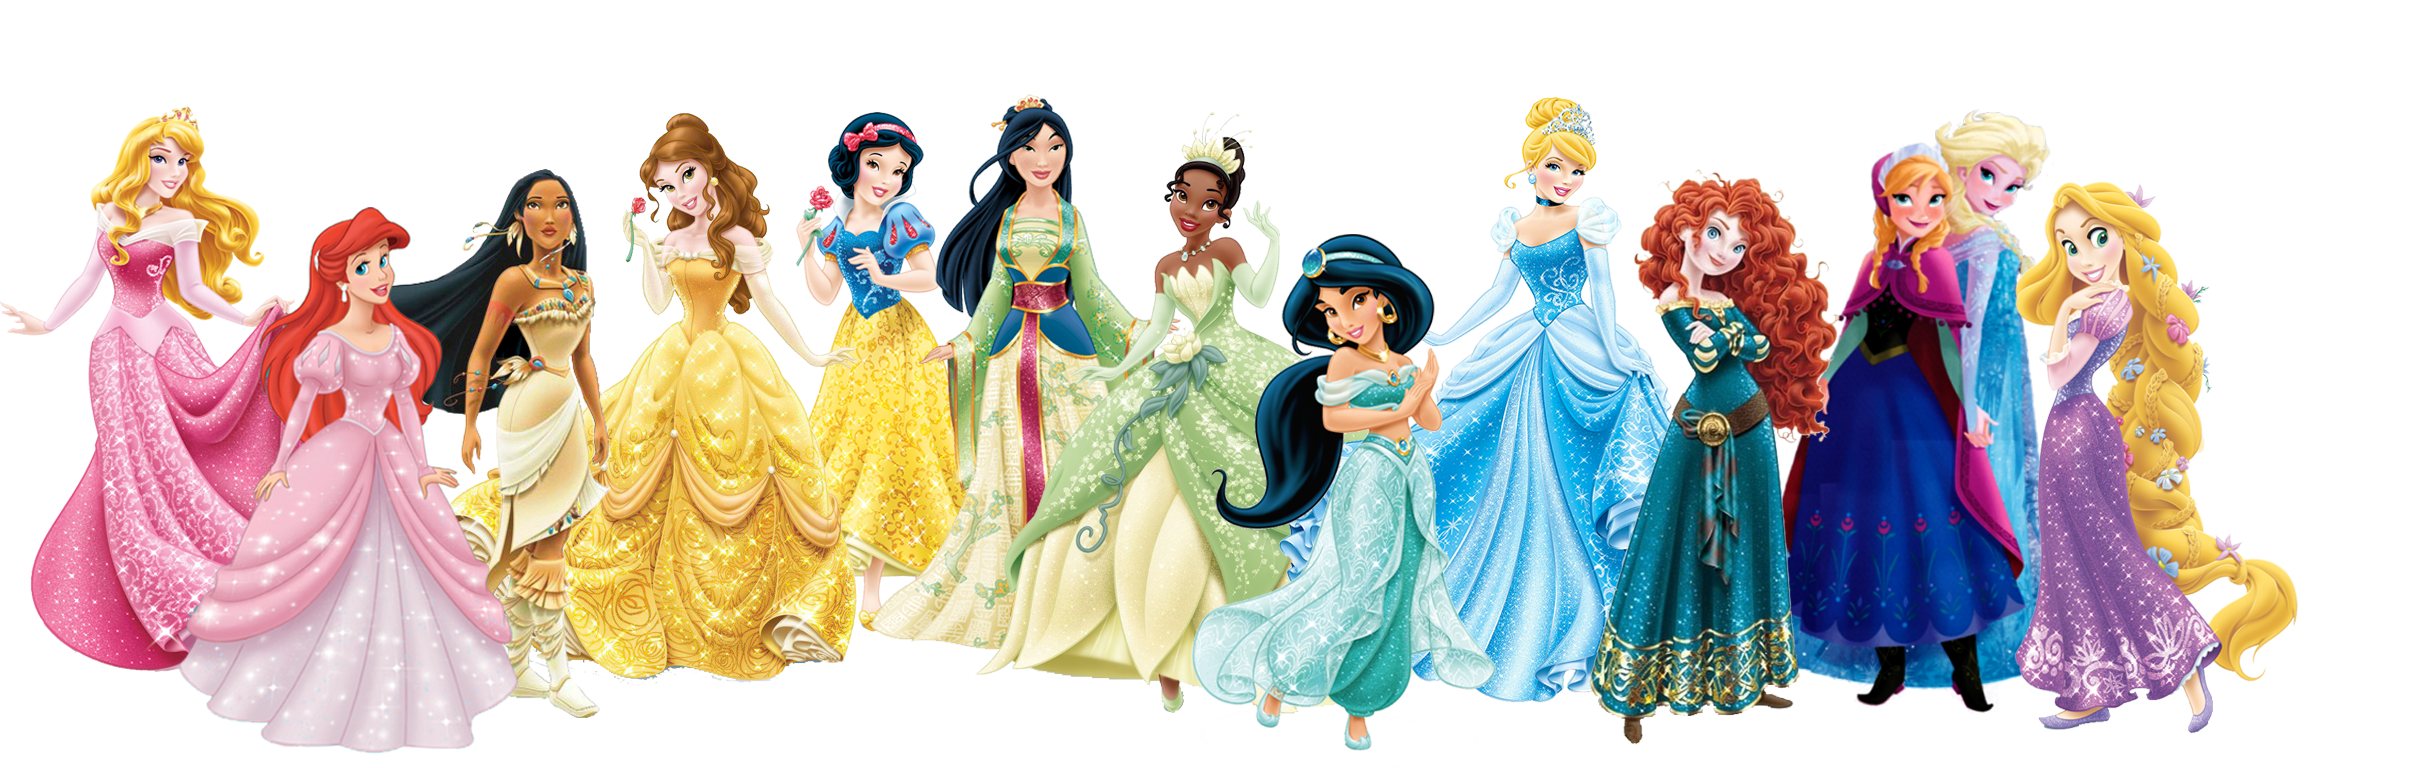 All Disney Princesses Plus Frozen By Mary62442 On Deviantart